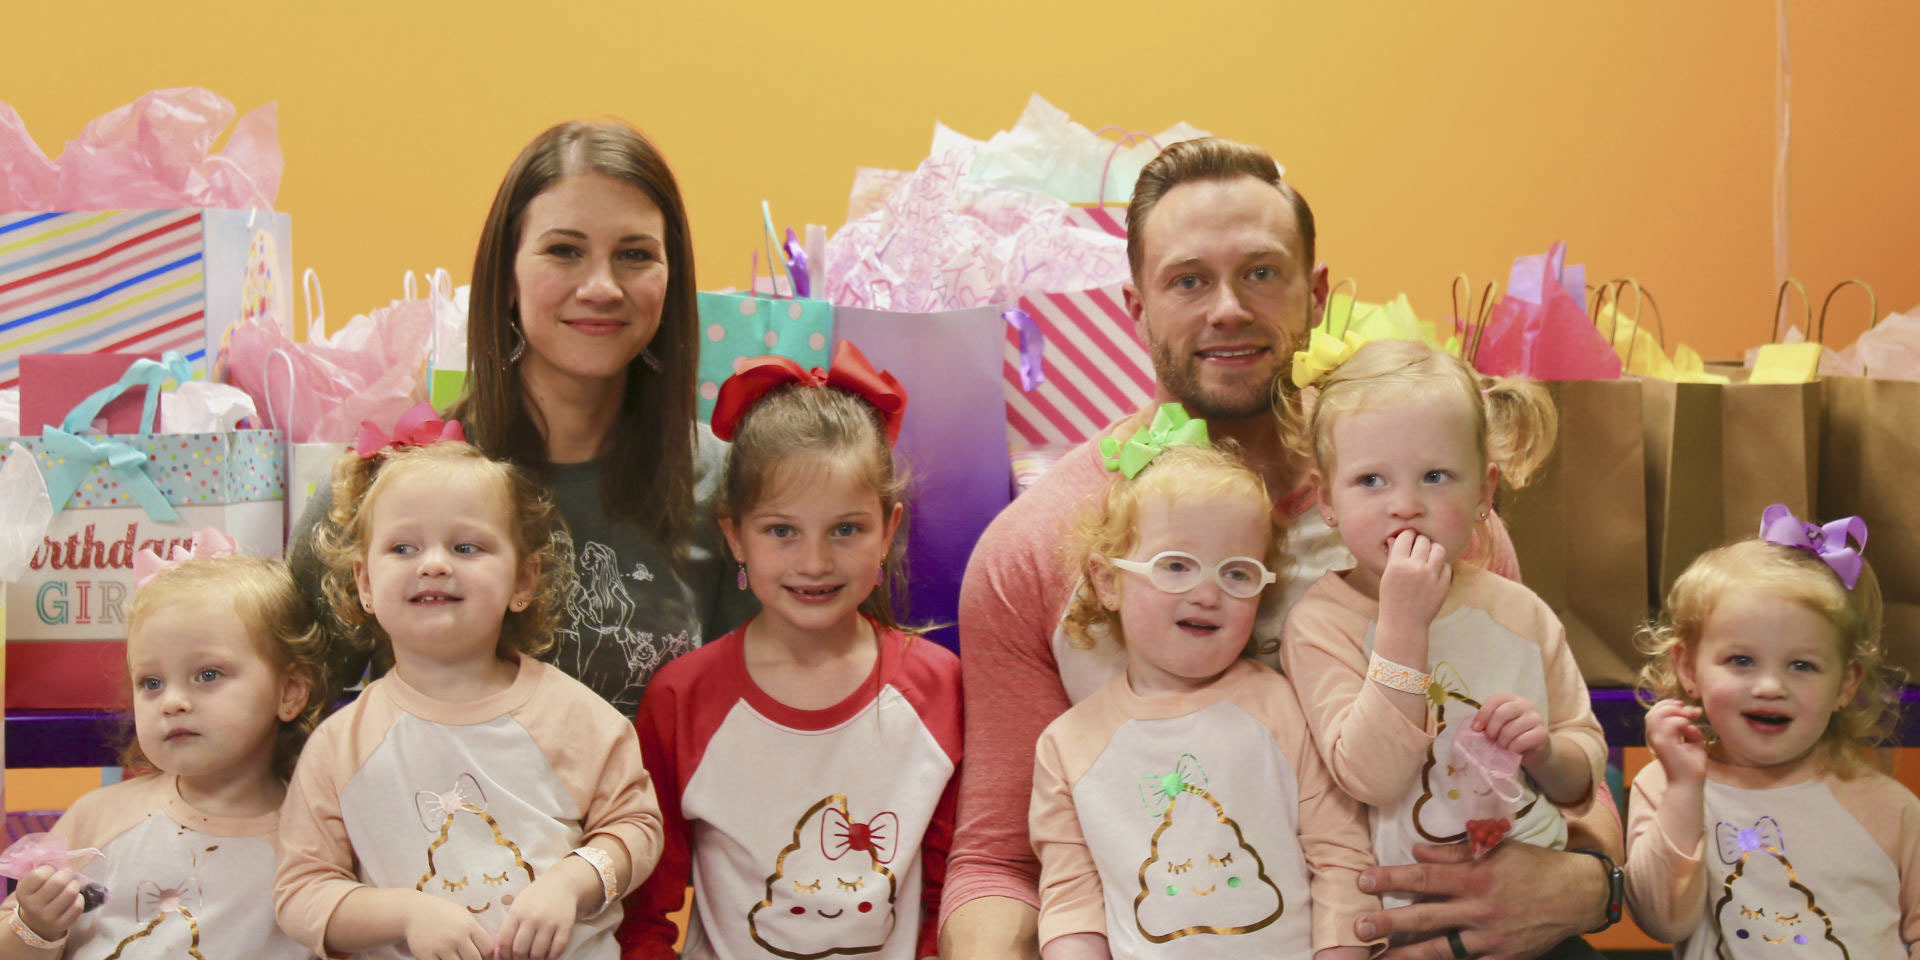 Outdaughtered Girls Names and Age of Busby Kids